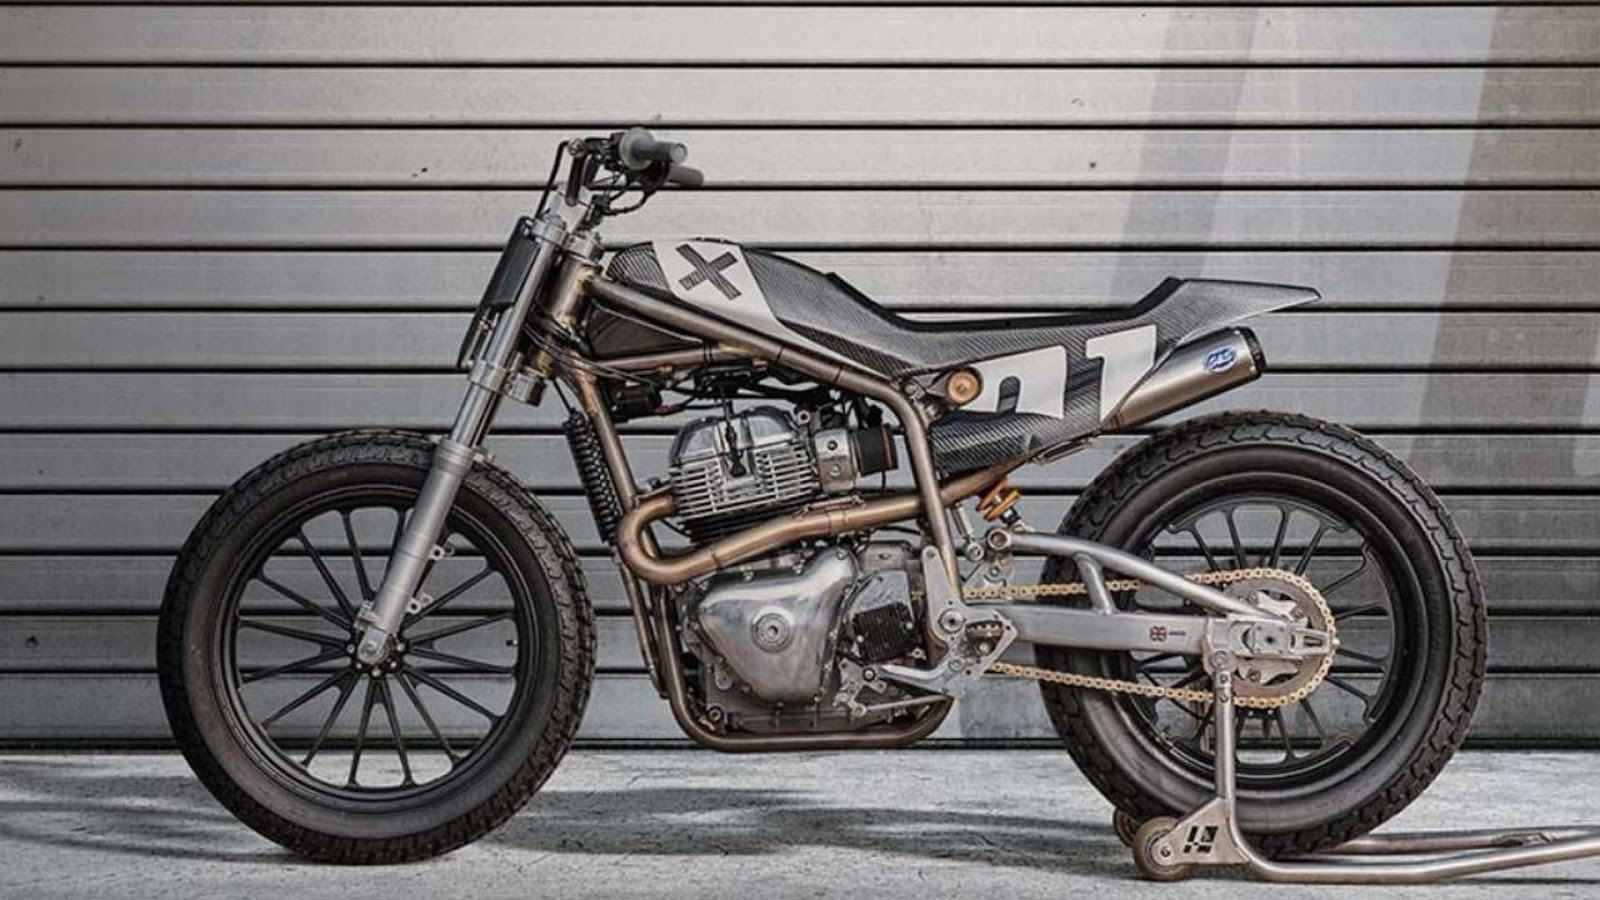 Les Flat tracks.... - Page 3 Flat-track-royal-enfield-650-twin